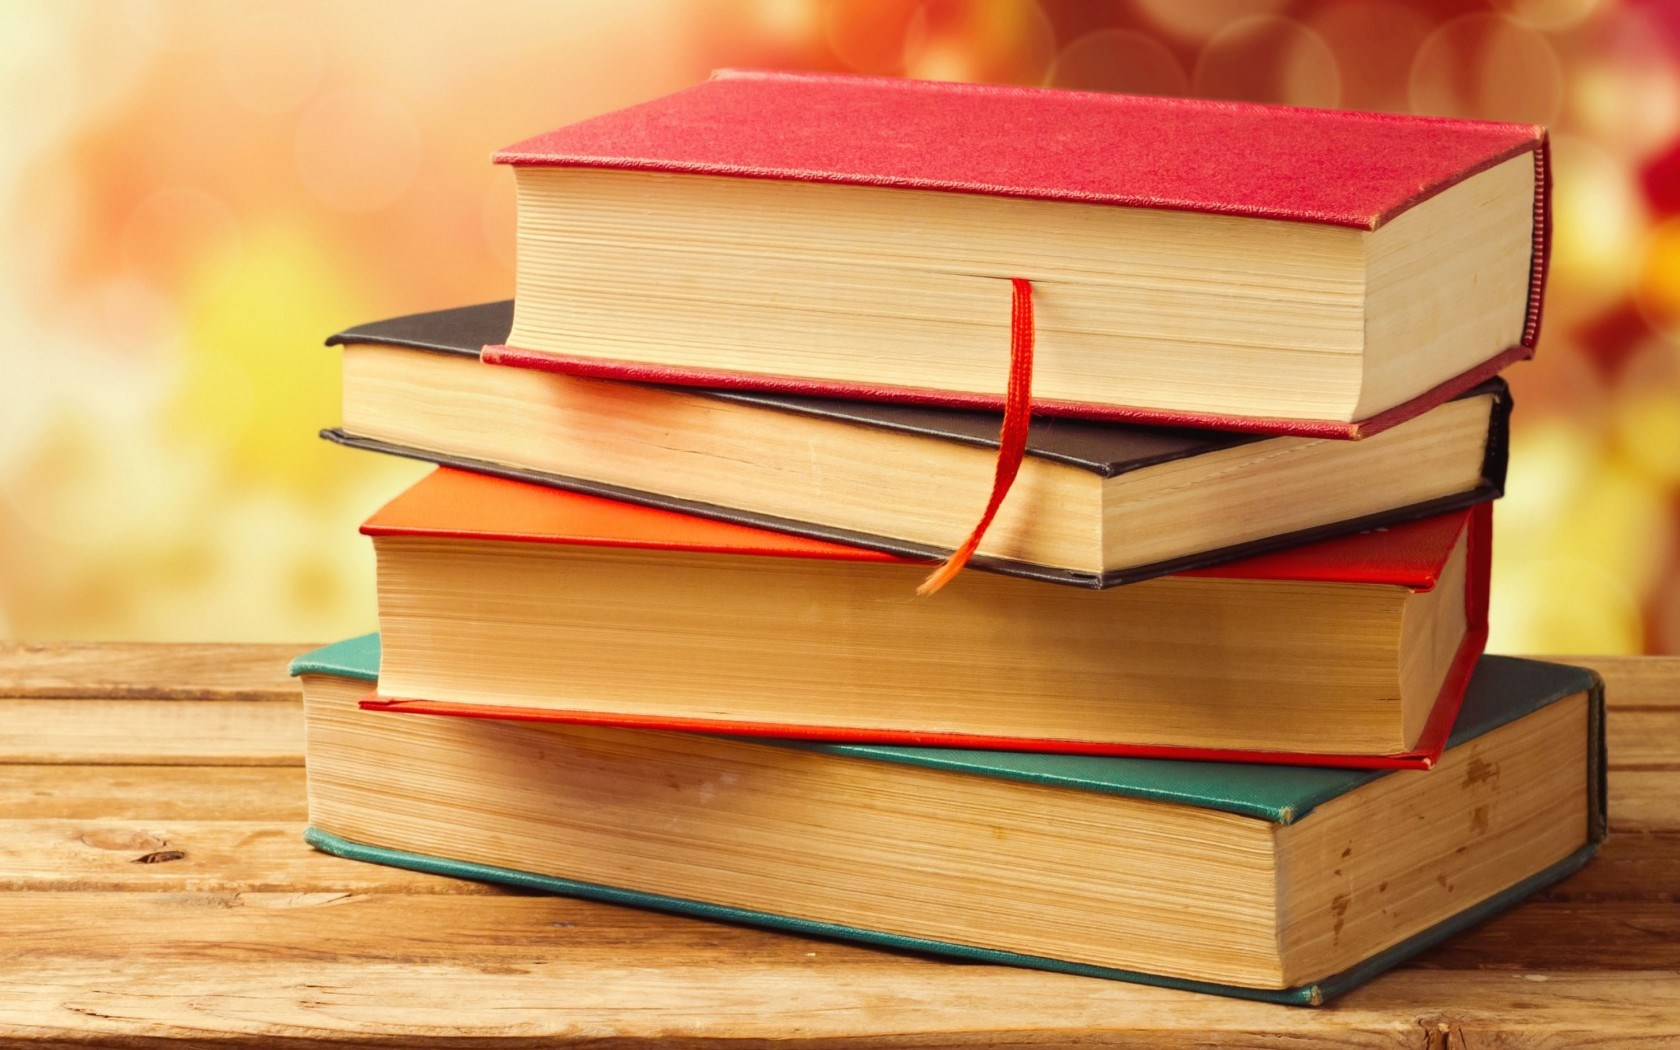 """I love to read but don't do nearly enough of it these days. I'm currently reading several books, including """"Becoming"""" by Michelle Obama, """"Girl Wash Your Face"""" by Rachel Hollis, and """"Manage Money Like a Boss"""" by Christine Luken. My goal is to get back to reading more physical pages and less social media ones."""